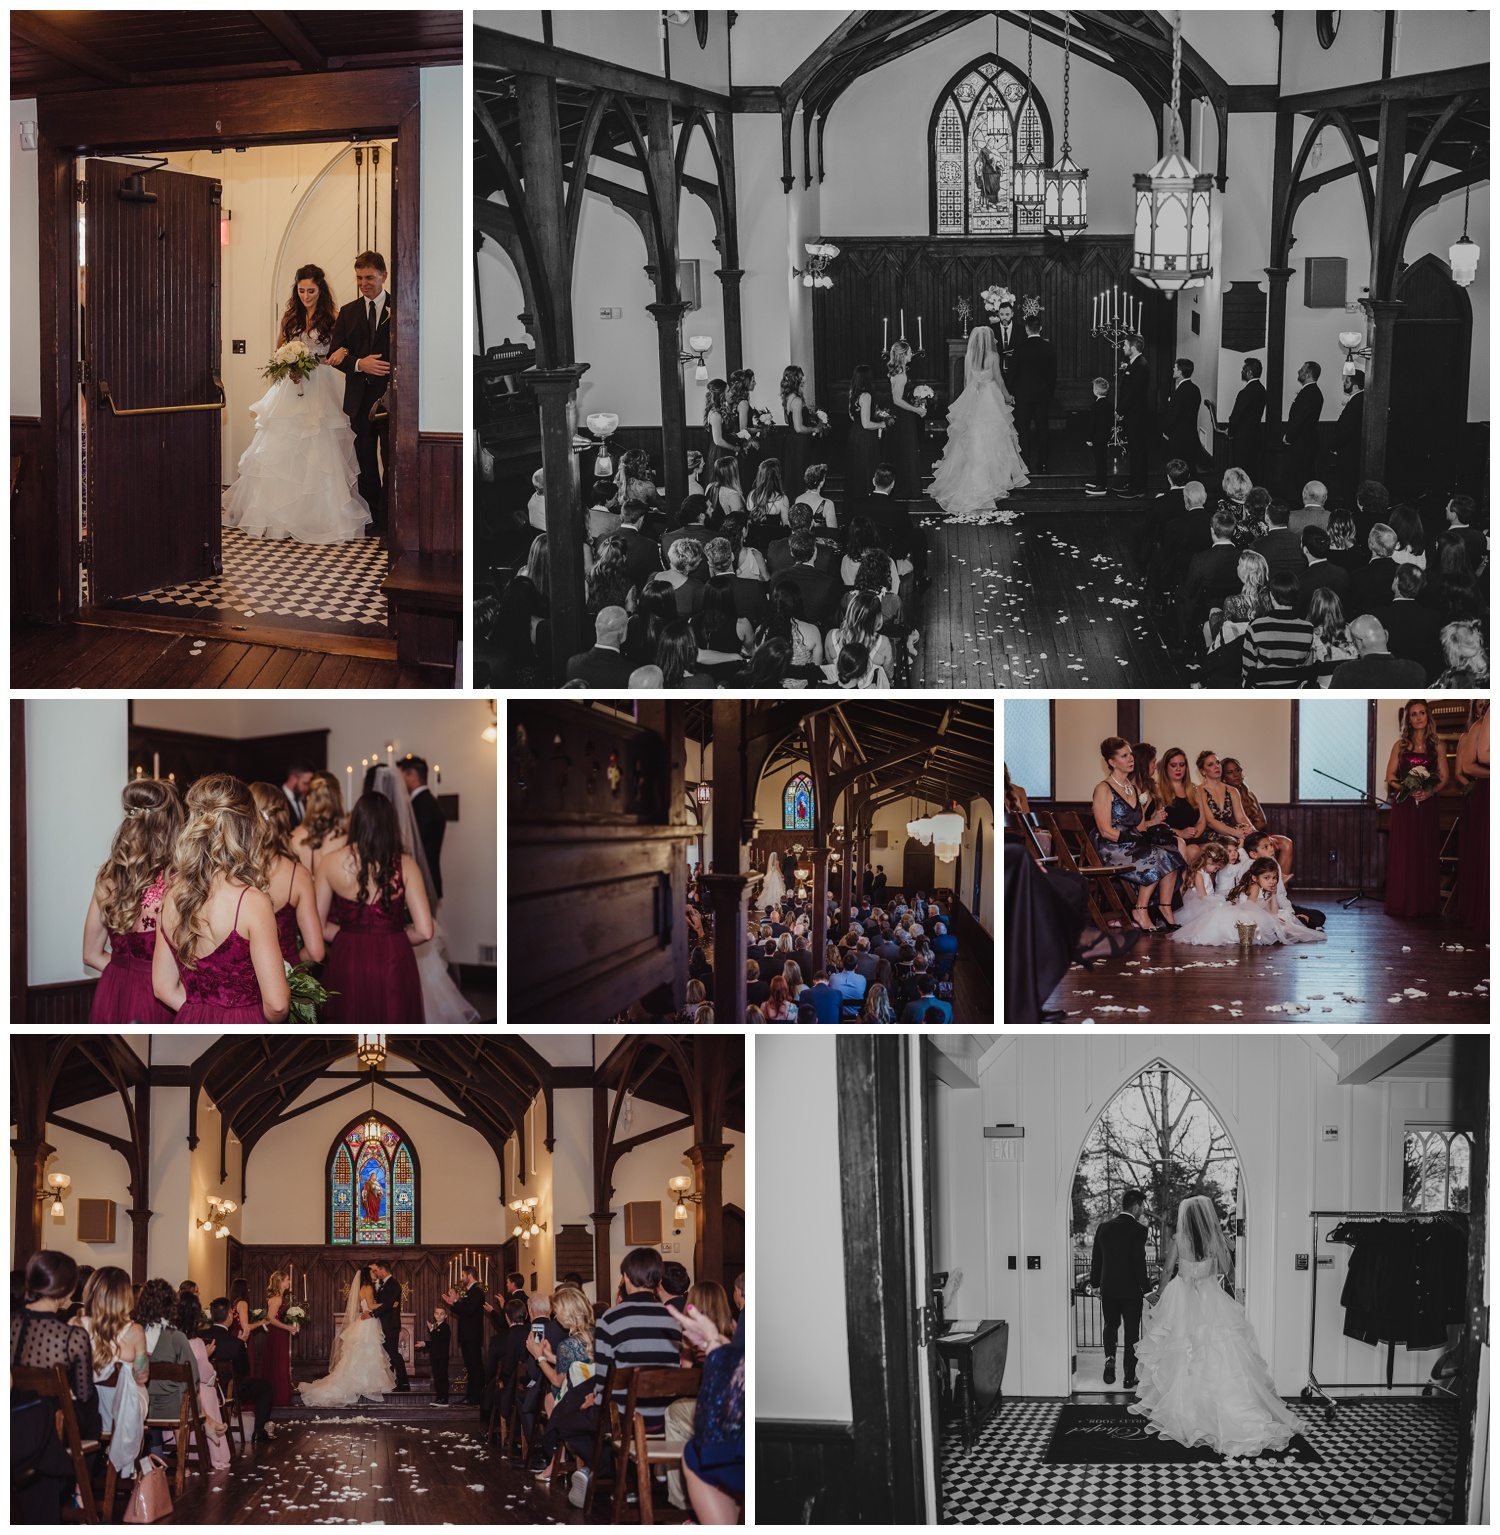 The wedding ceremony with cranberry accents, white flowers, and lots of guests was beautiful at the All Saints Chapel in Raleigh, North Carolina, pictures by Rose Trail Images.